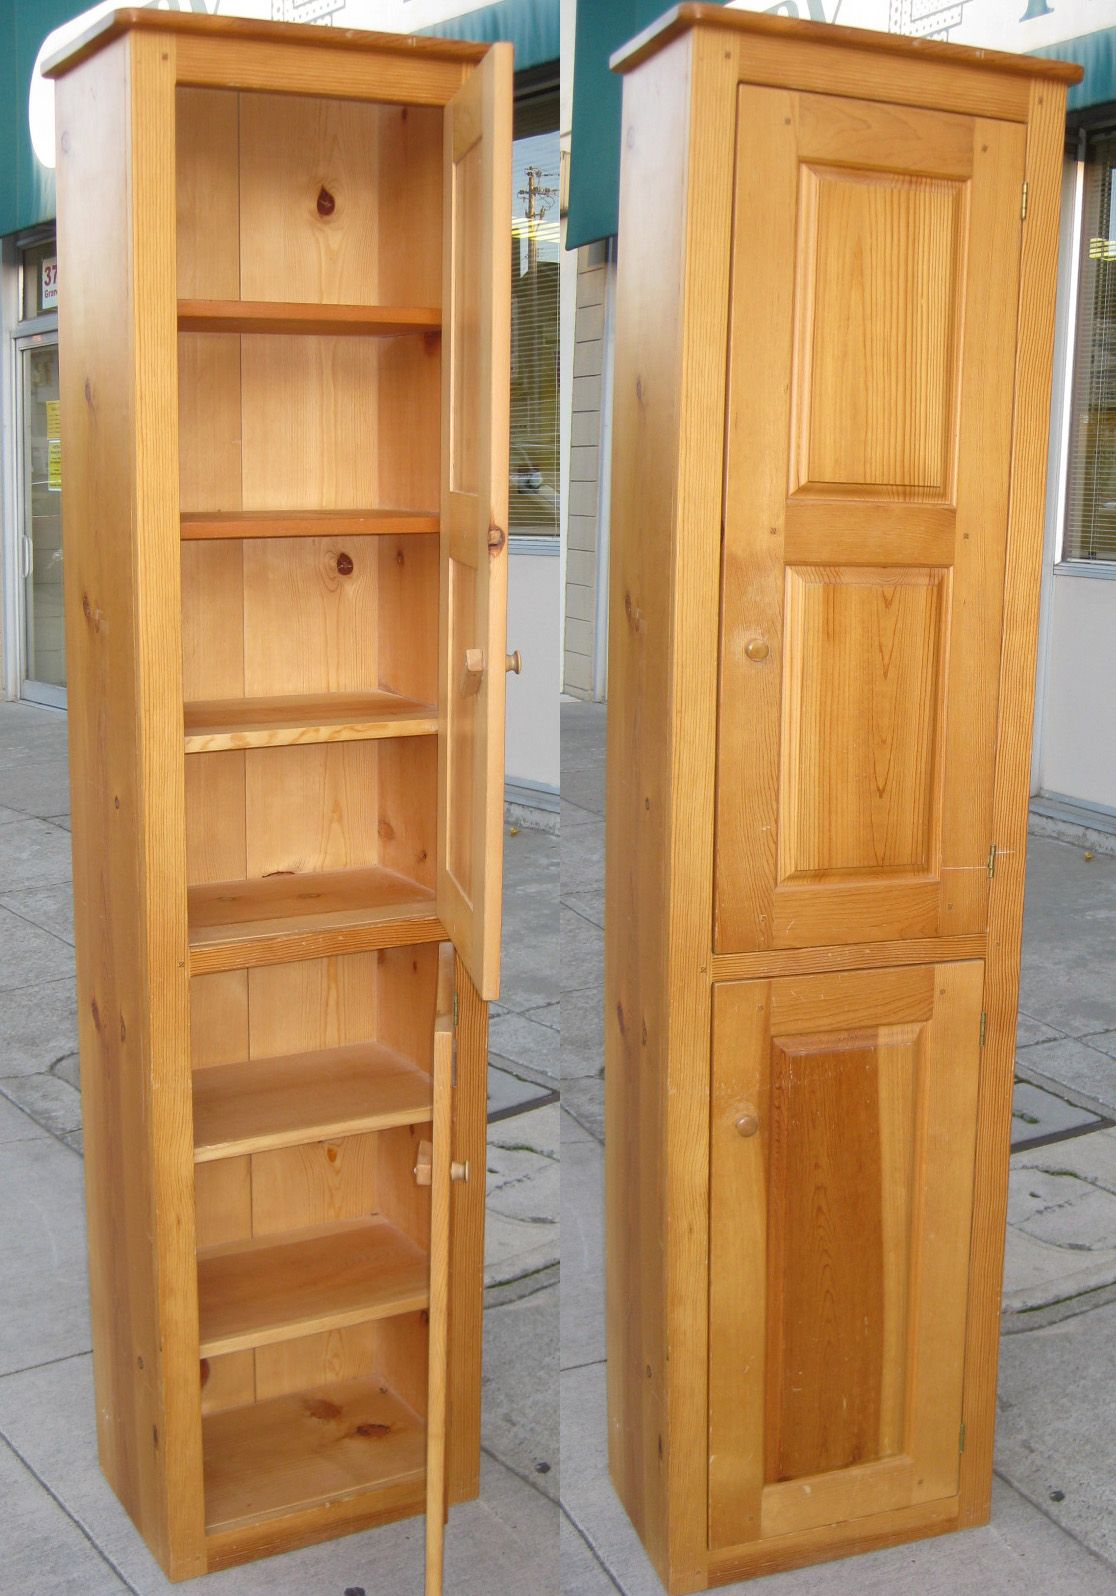 Tall Narrow Cabinet With Doors The Pictures Below Show The